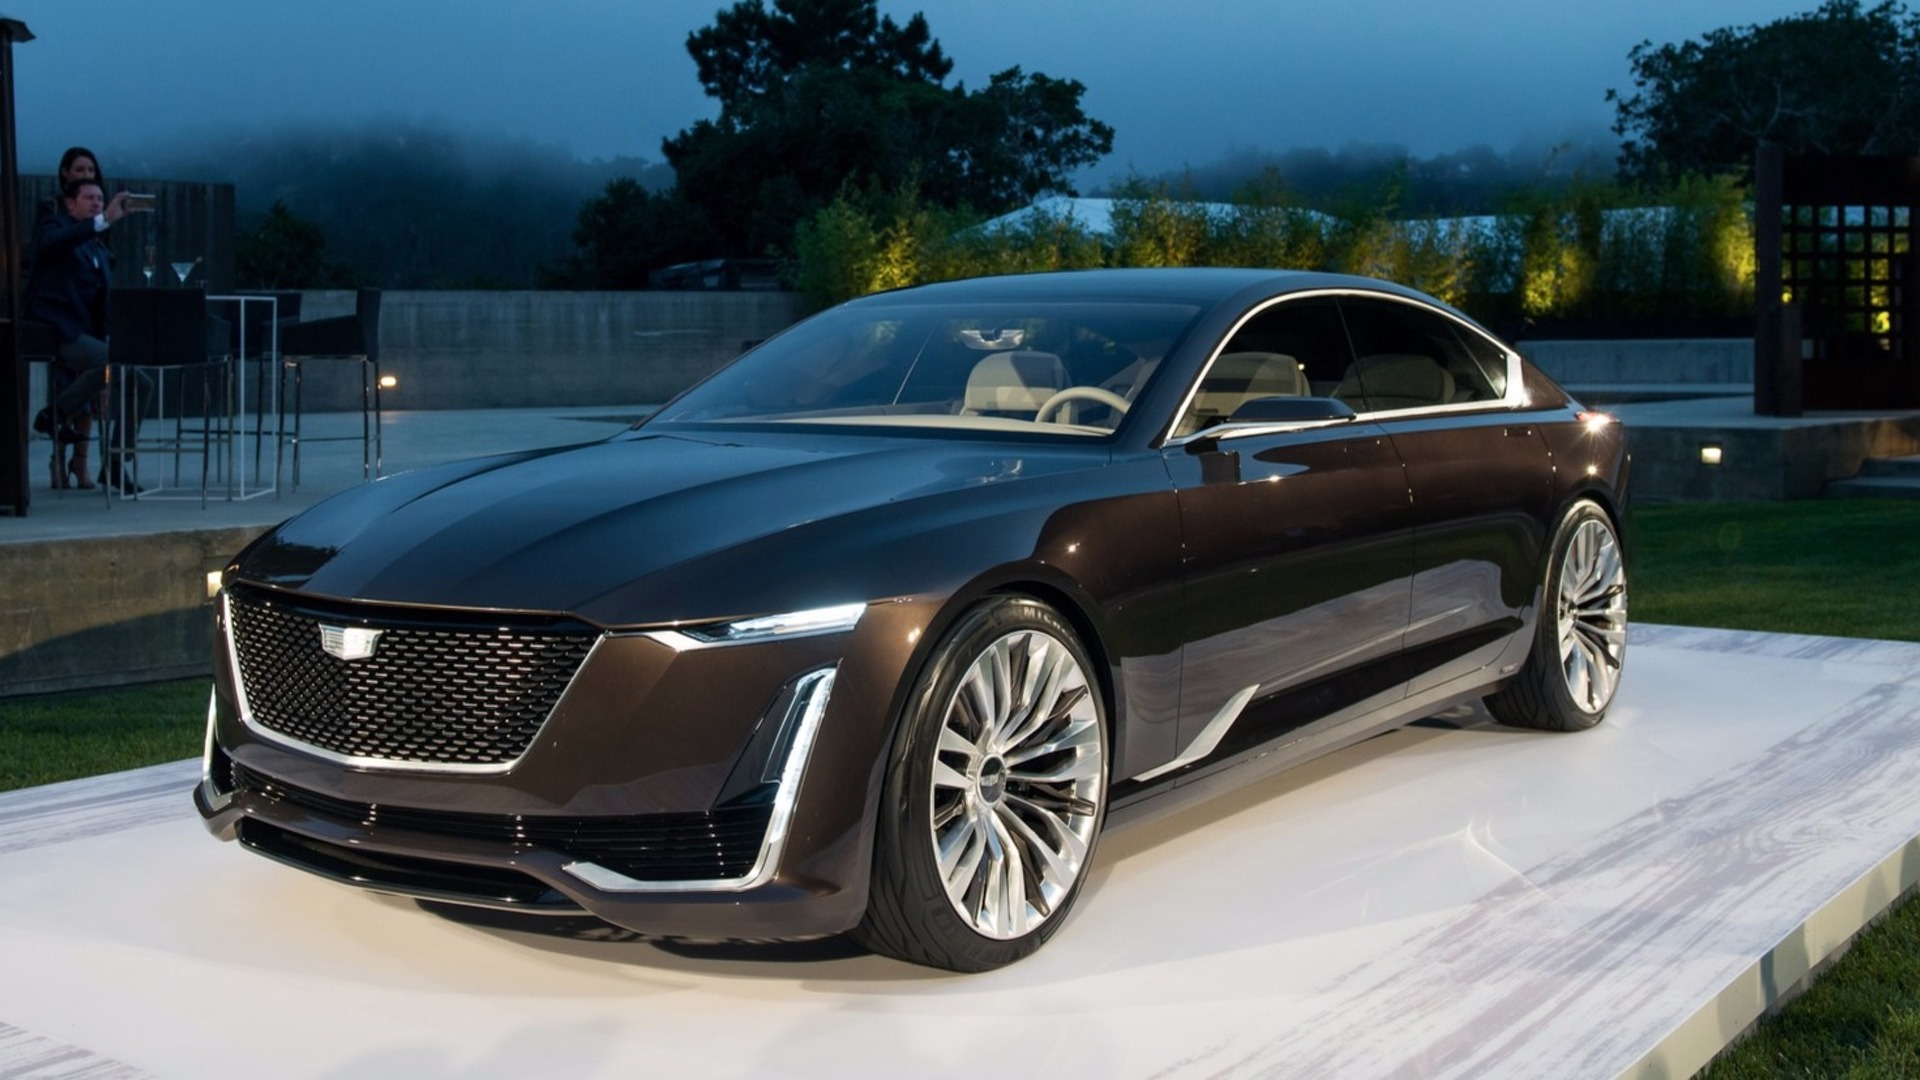 luxury owned cadillac new located is certified covert a austin dealer in used pre car